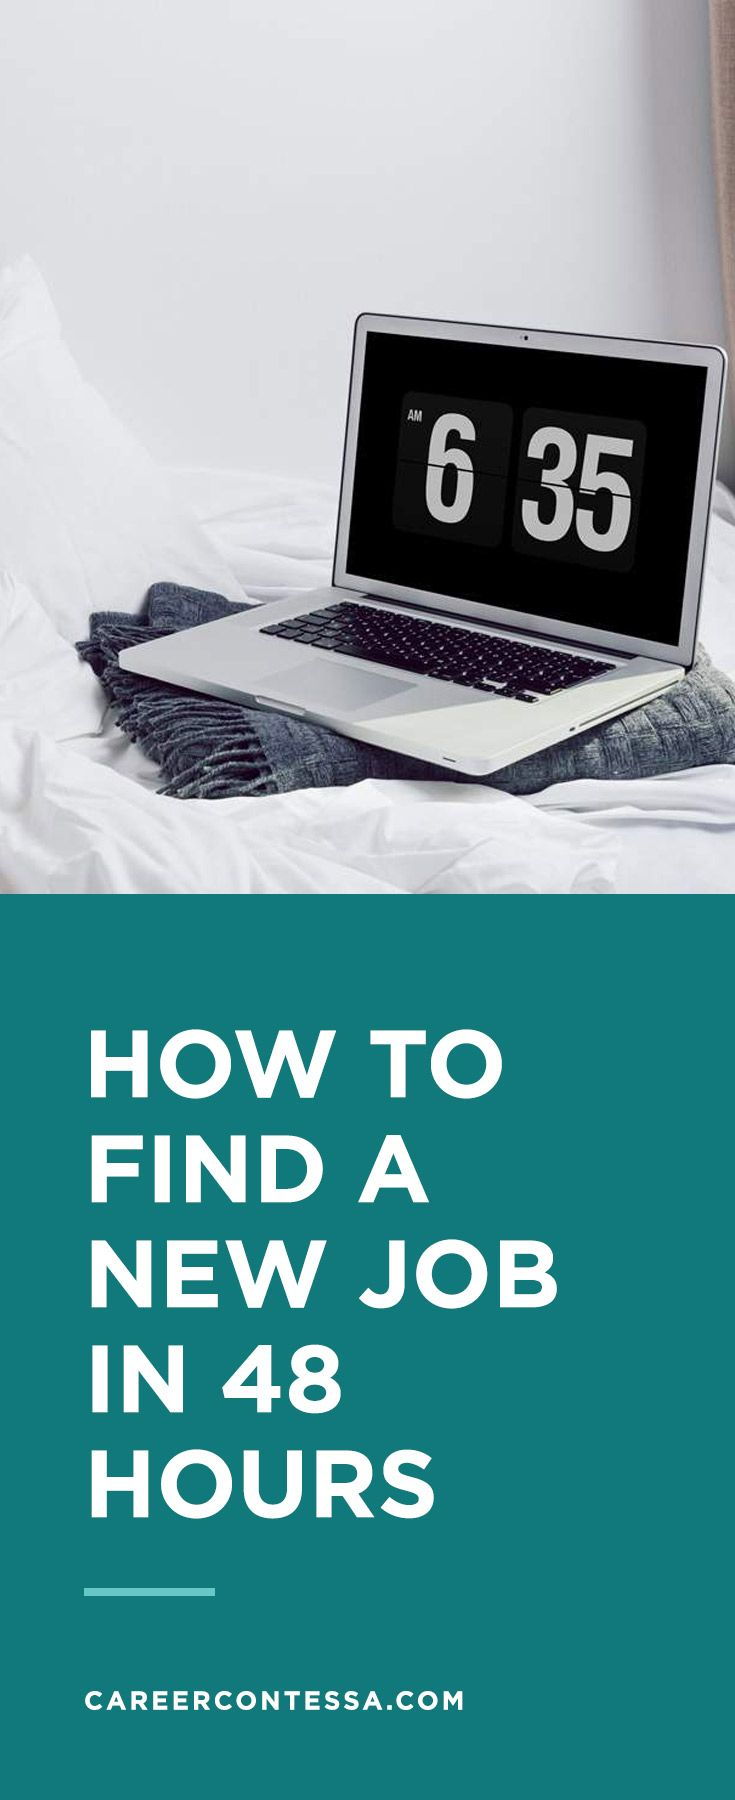 Follow Our Guide To Kickstart Your Job Search In Under 48 Hours